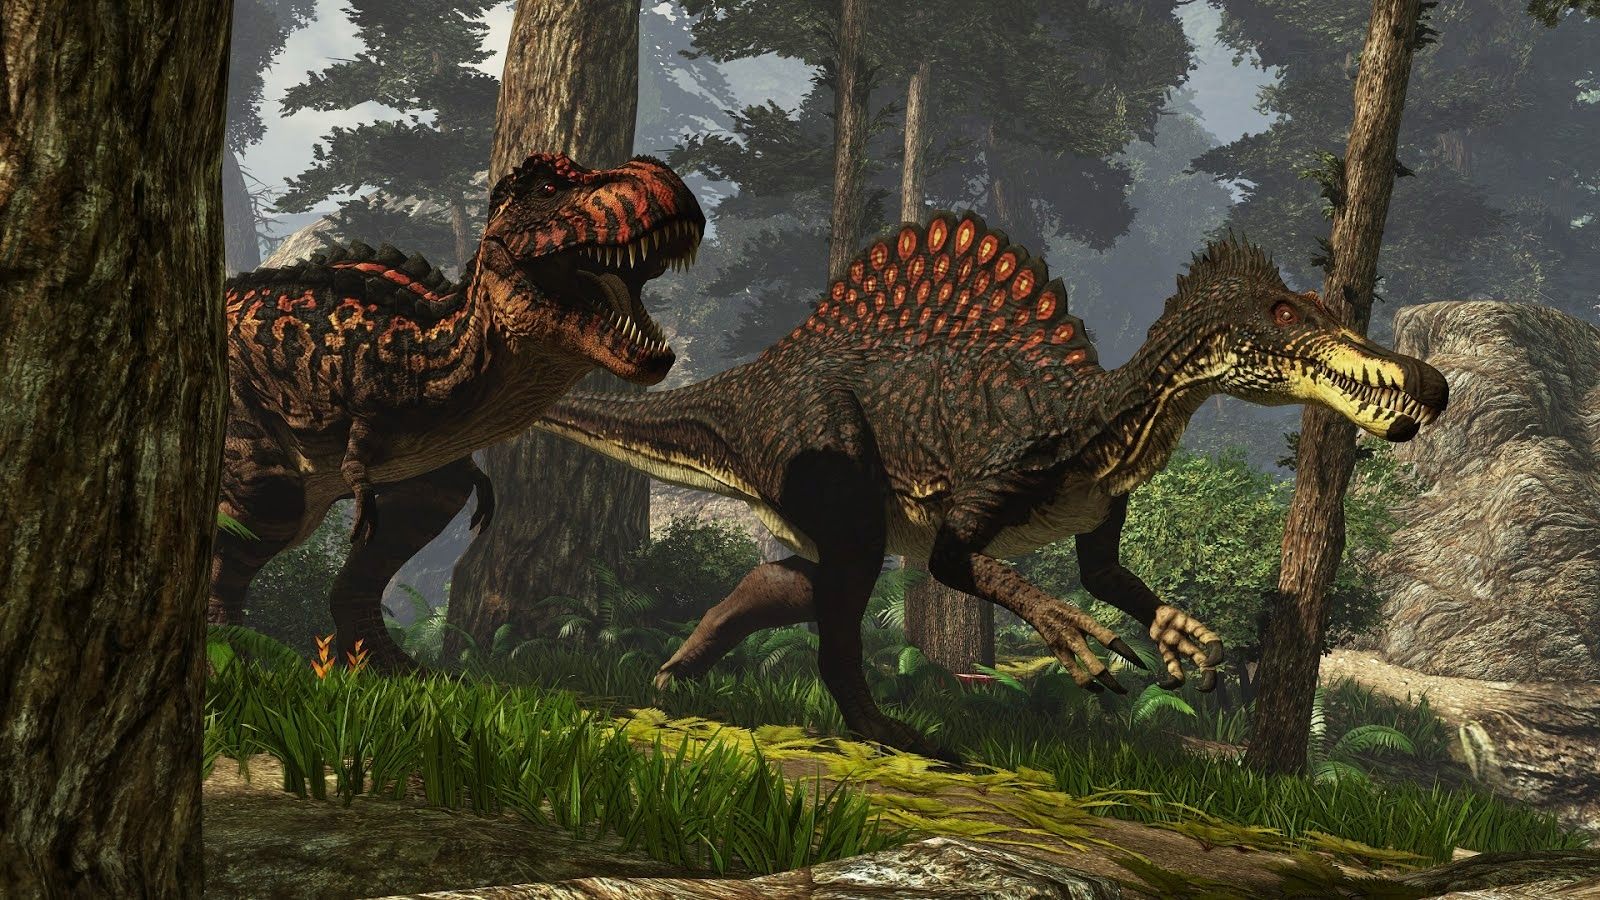 24/01/2017· Primal Carnage Extinction Overview. Primal Carnage Extinction Free Download for PC is a class-based, online multiplayer video game featuring human versus dinosaur combat.